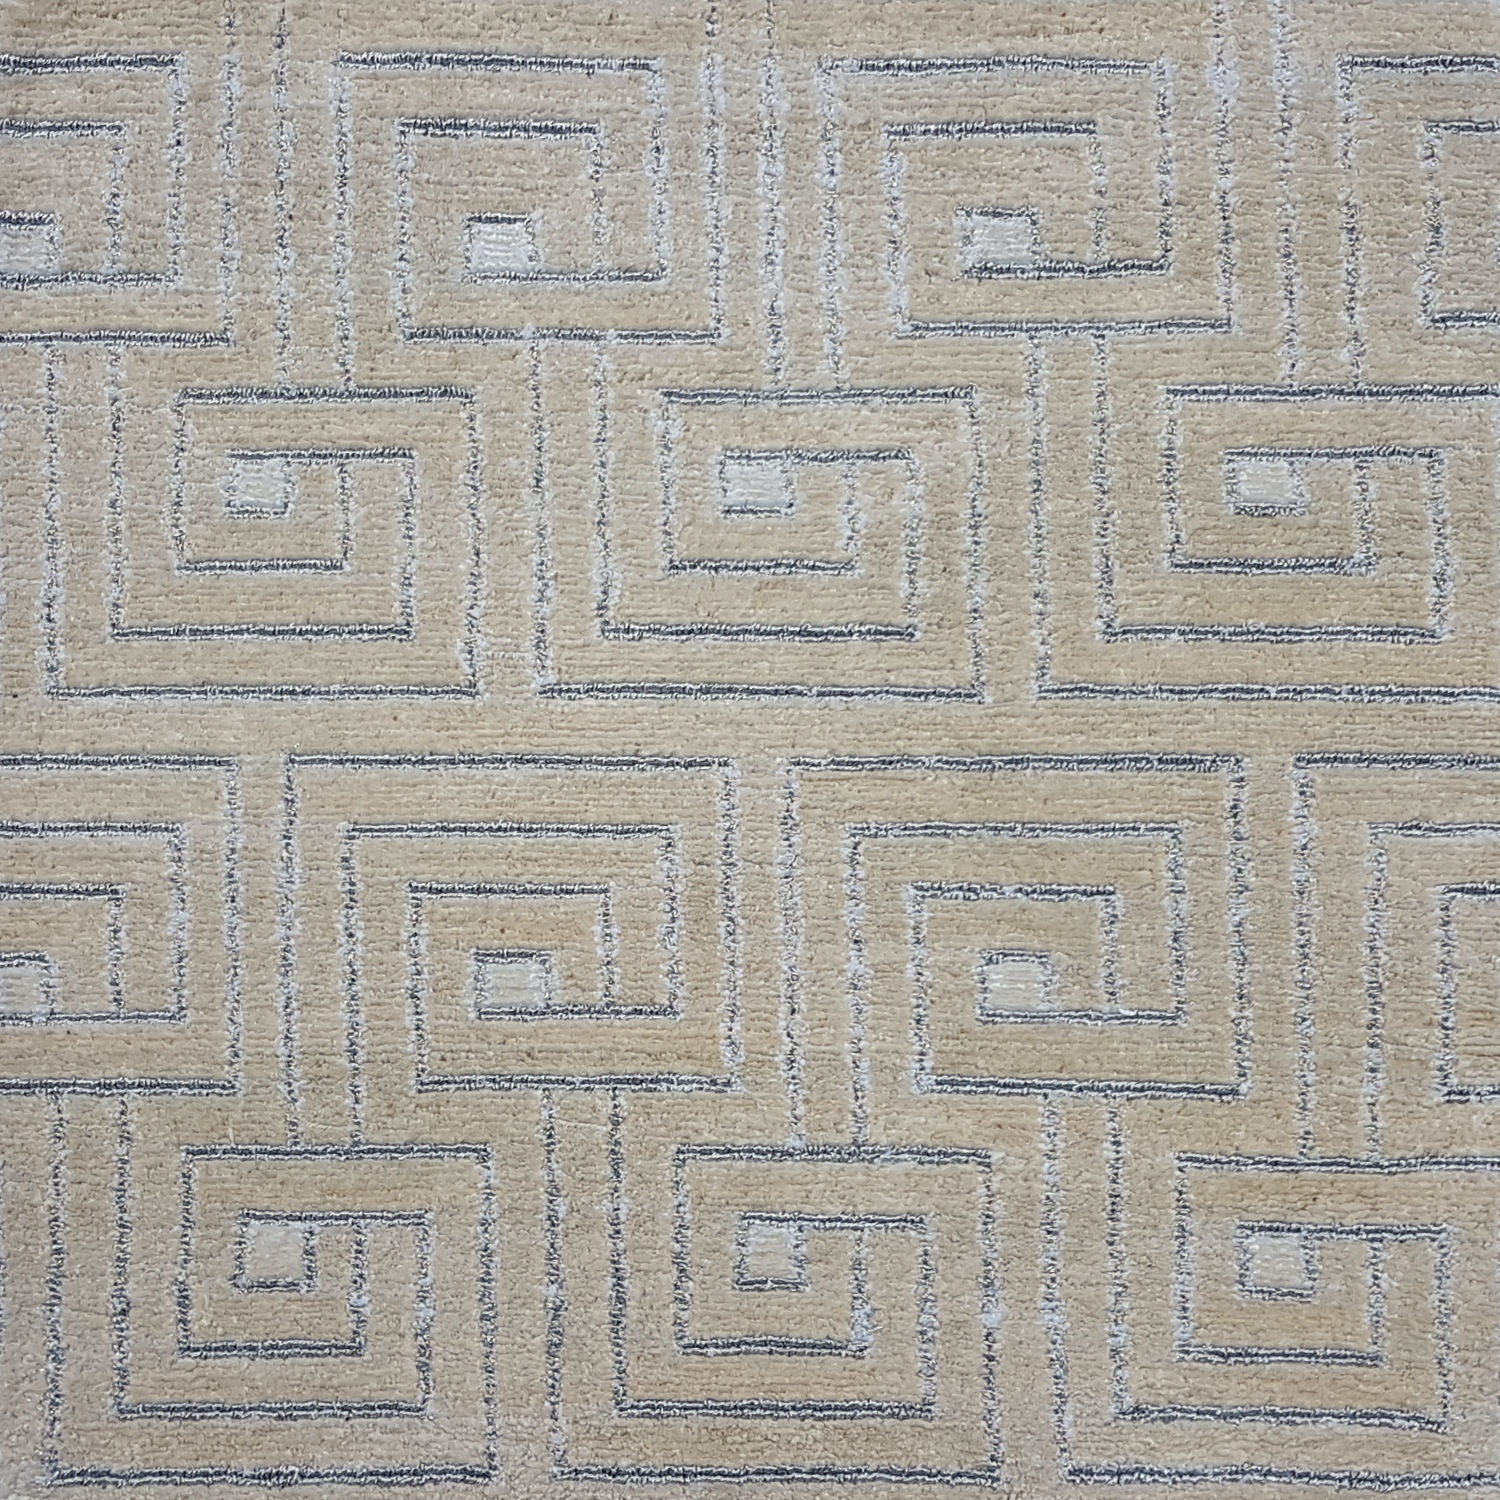 Brunschwig Carpet V8-12133/Sp.White Metallic CB-102036.WHITE METALLIC.0